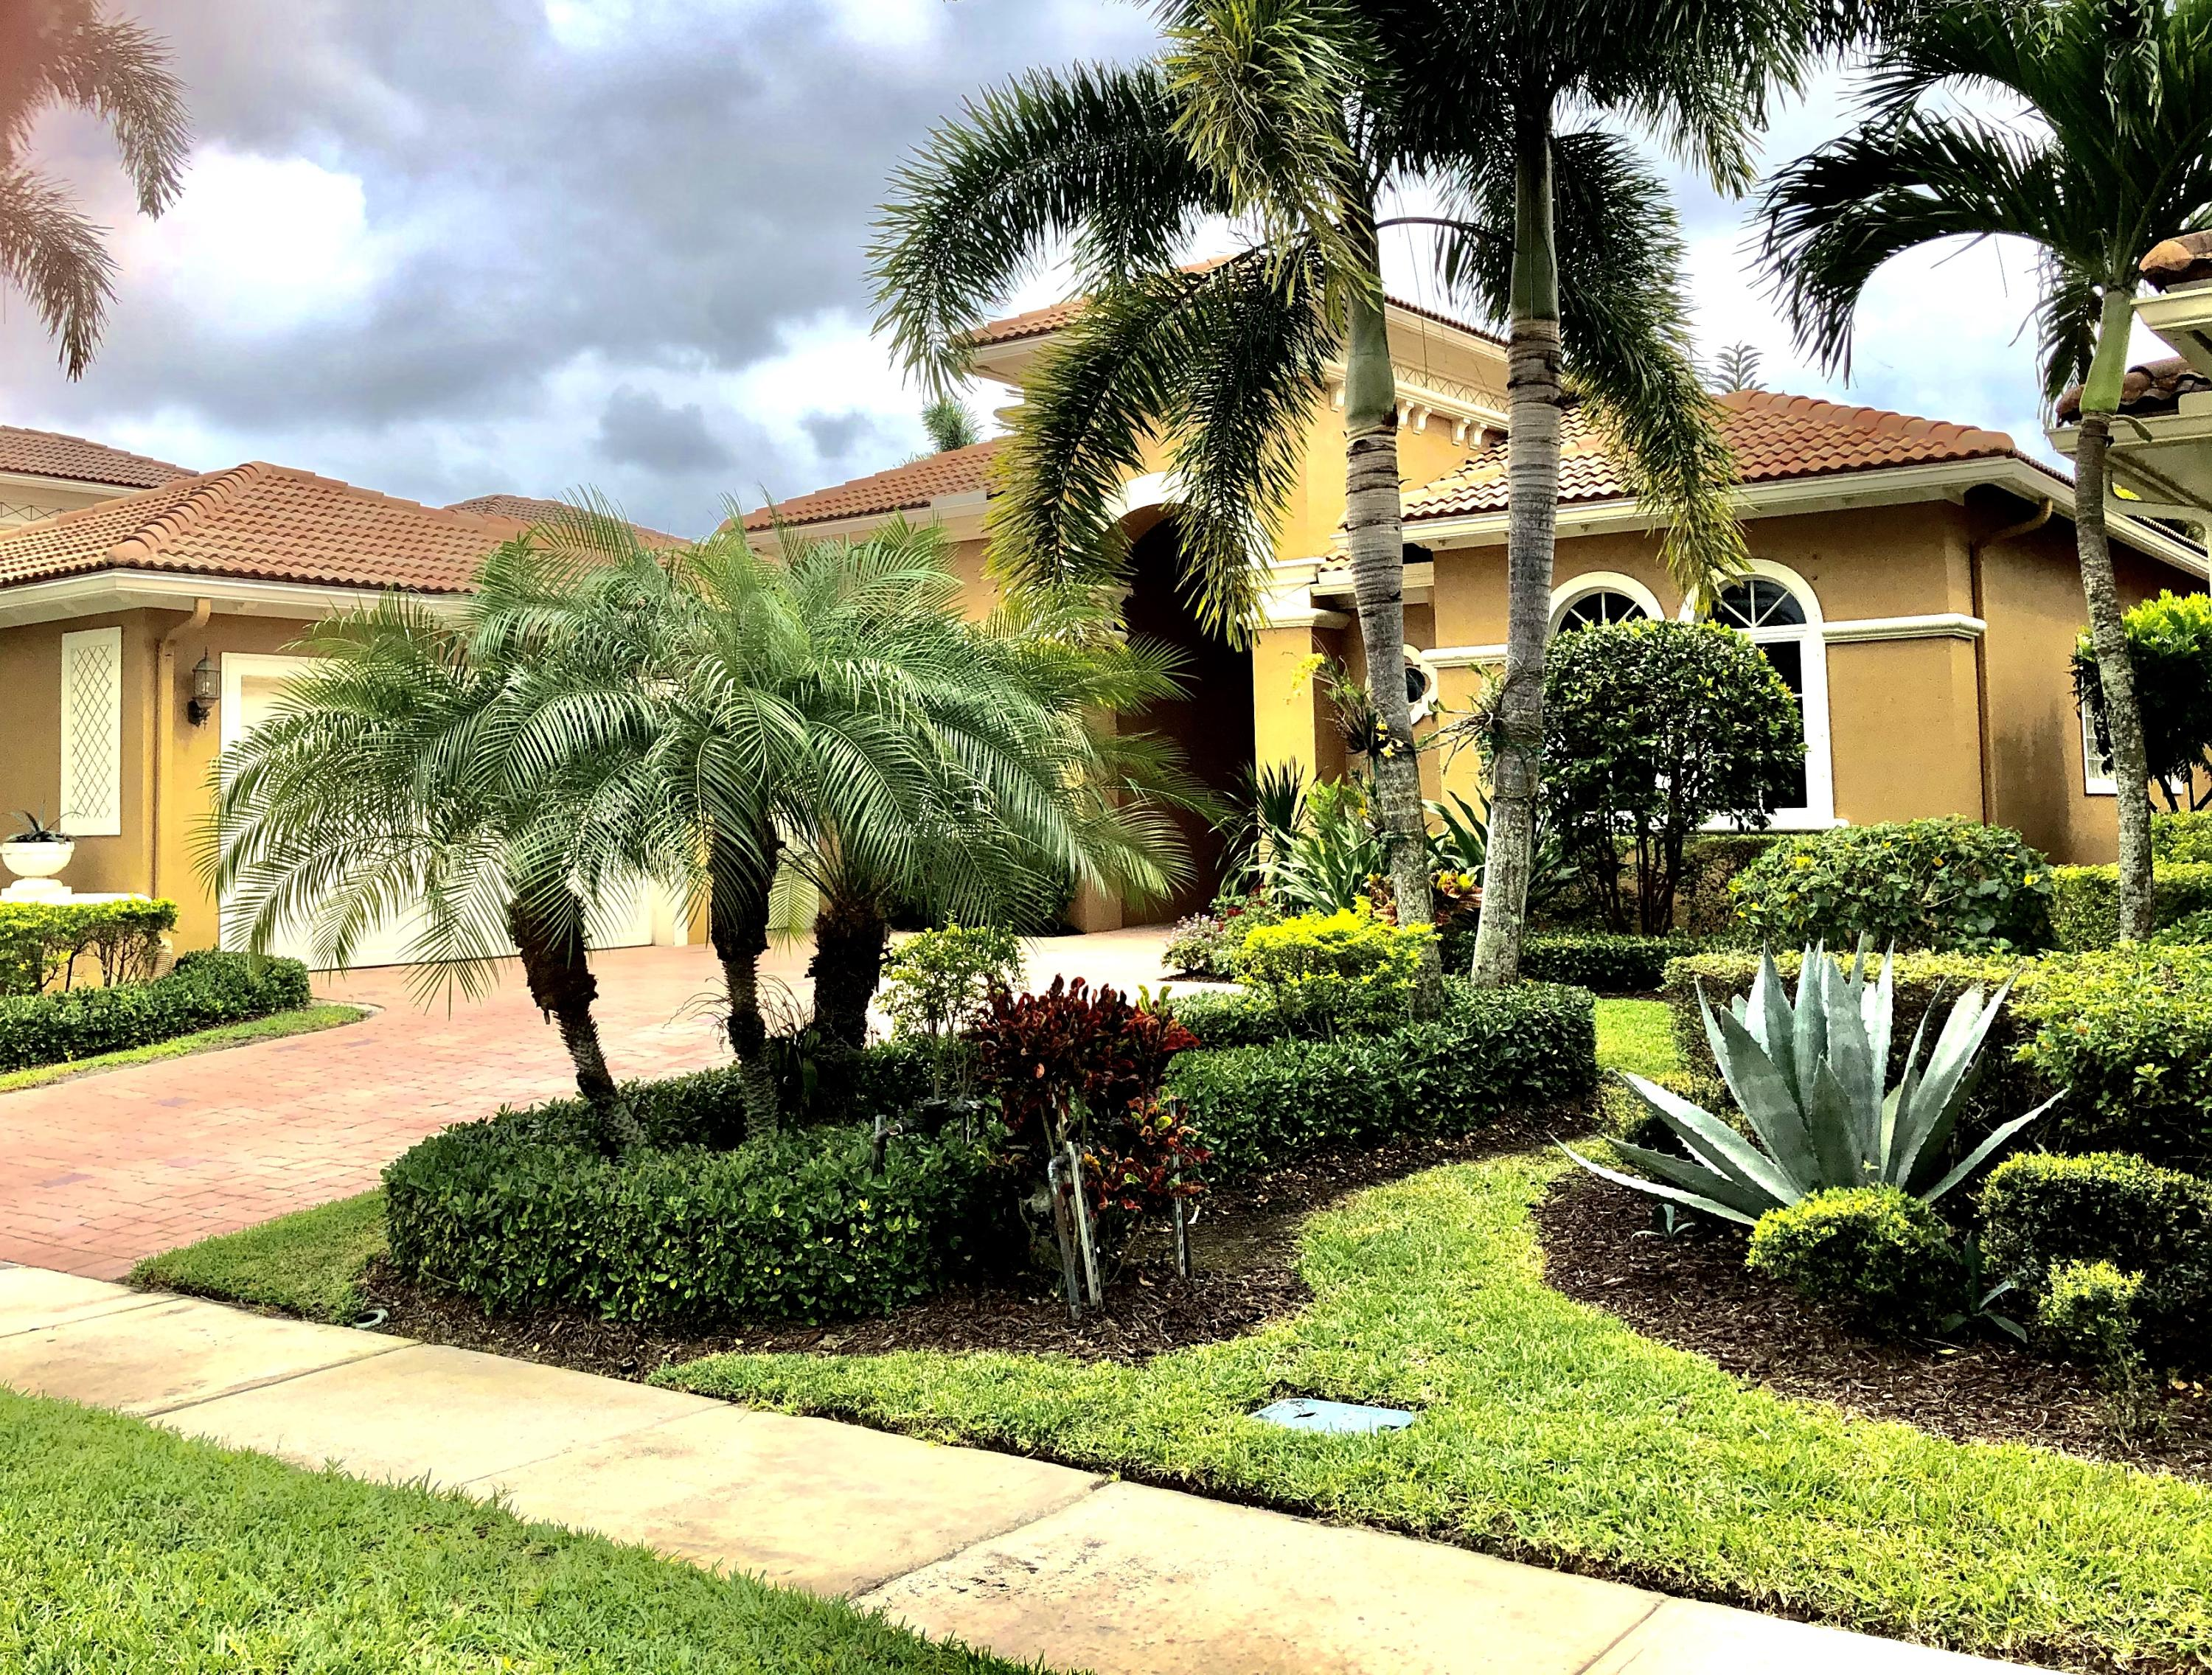 10732 Hollow Bay Terrace, West Palm Beach, Florida 33412, 3 Bedrooms Bedrooms, ,3.1 BathroomsBathrooms,A,Single family,Hollow Bay,RX-10616910